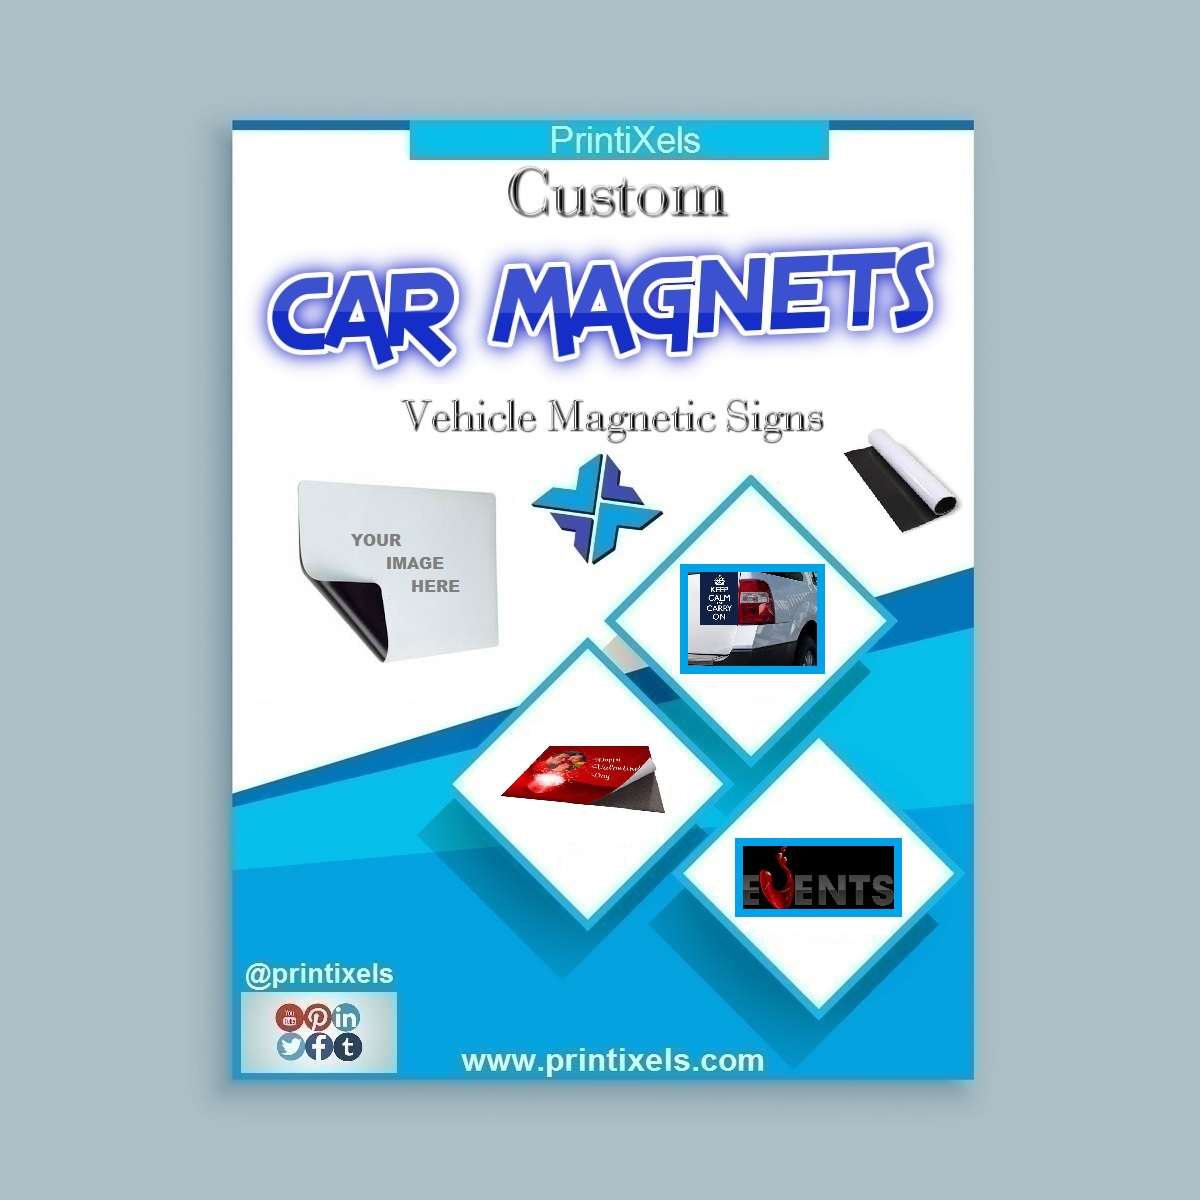 Custom Car Magnets, Vehicle Magnetic Signs